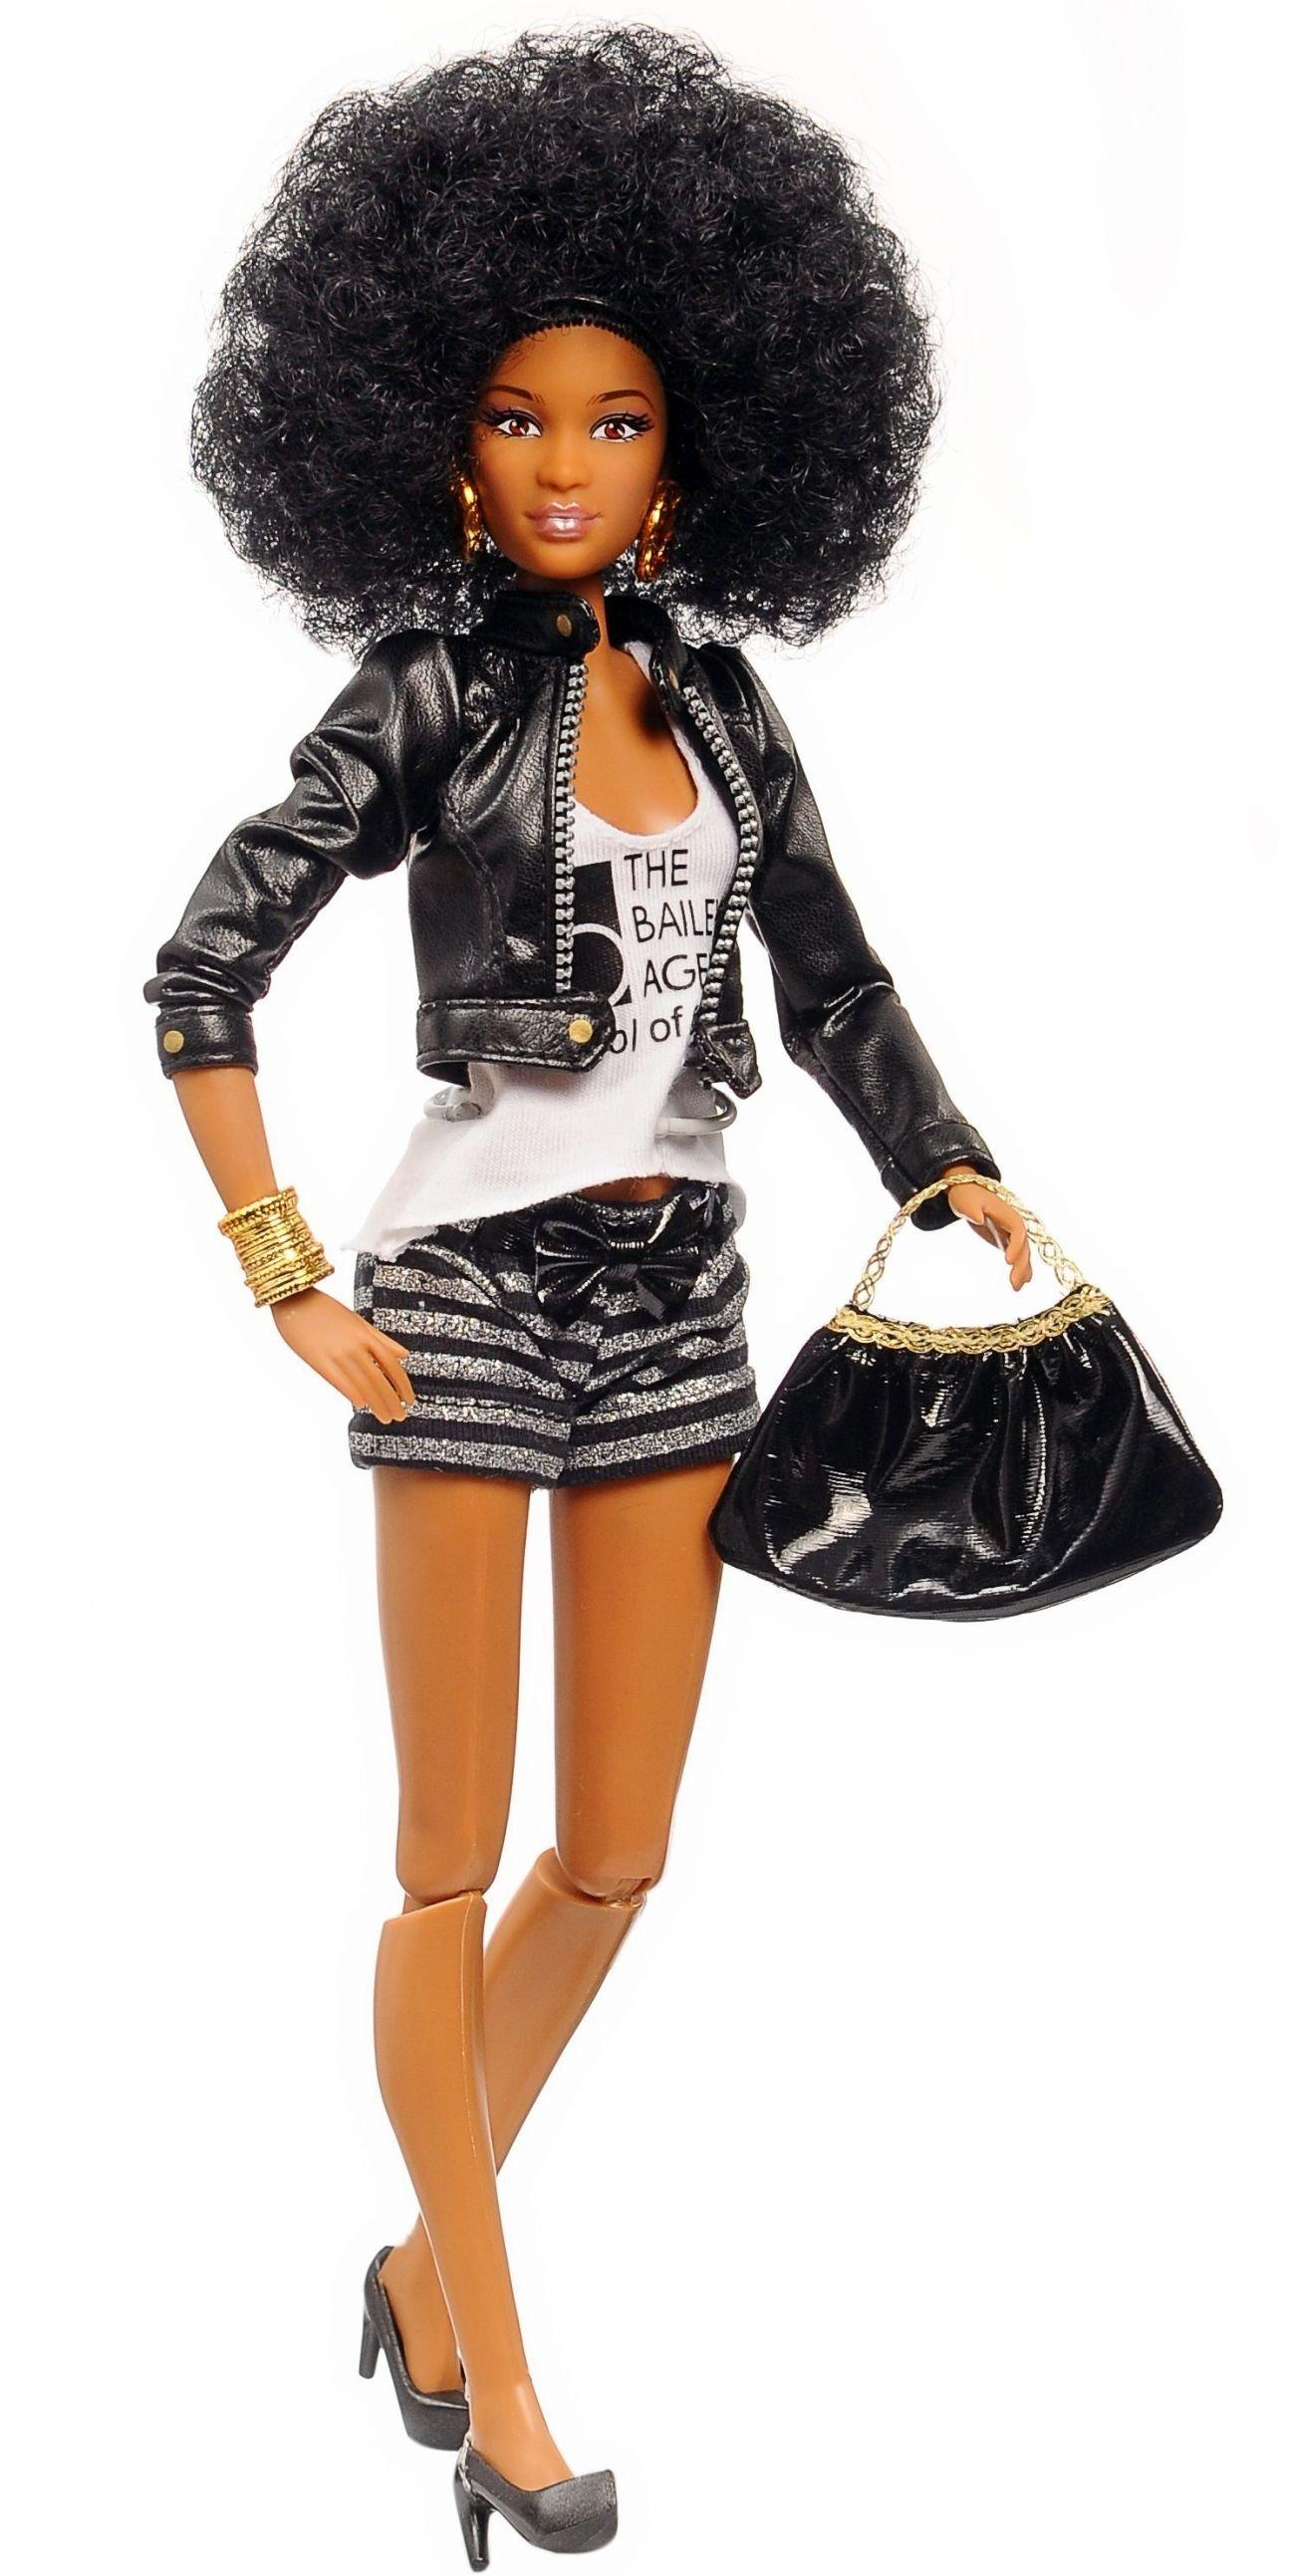 Cynthia bailey doll with afro hair